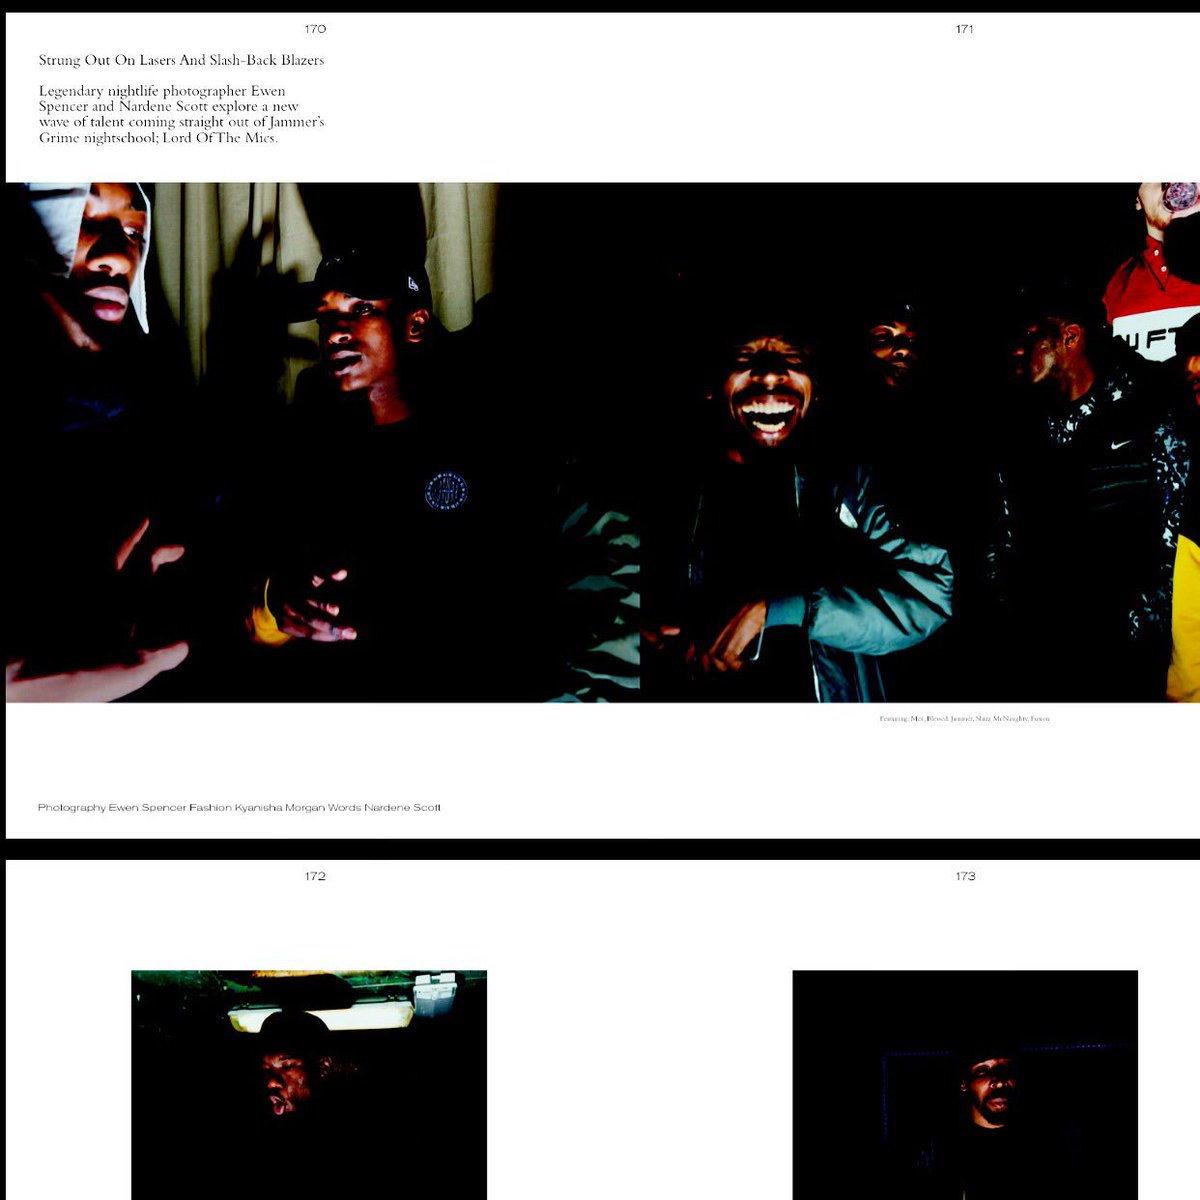 . @lordofthemics_ in the new issue of @wonderlandmag @ewenspencer @BlessedSWB @jammerbbk @UncleMez @fusion_ias